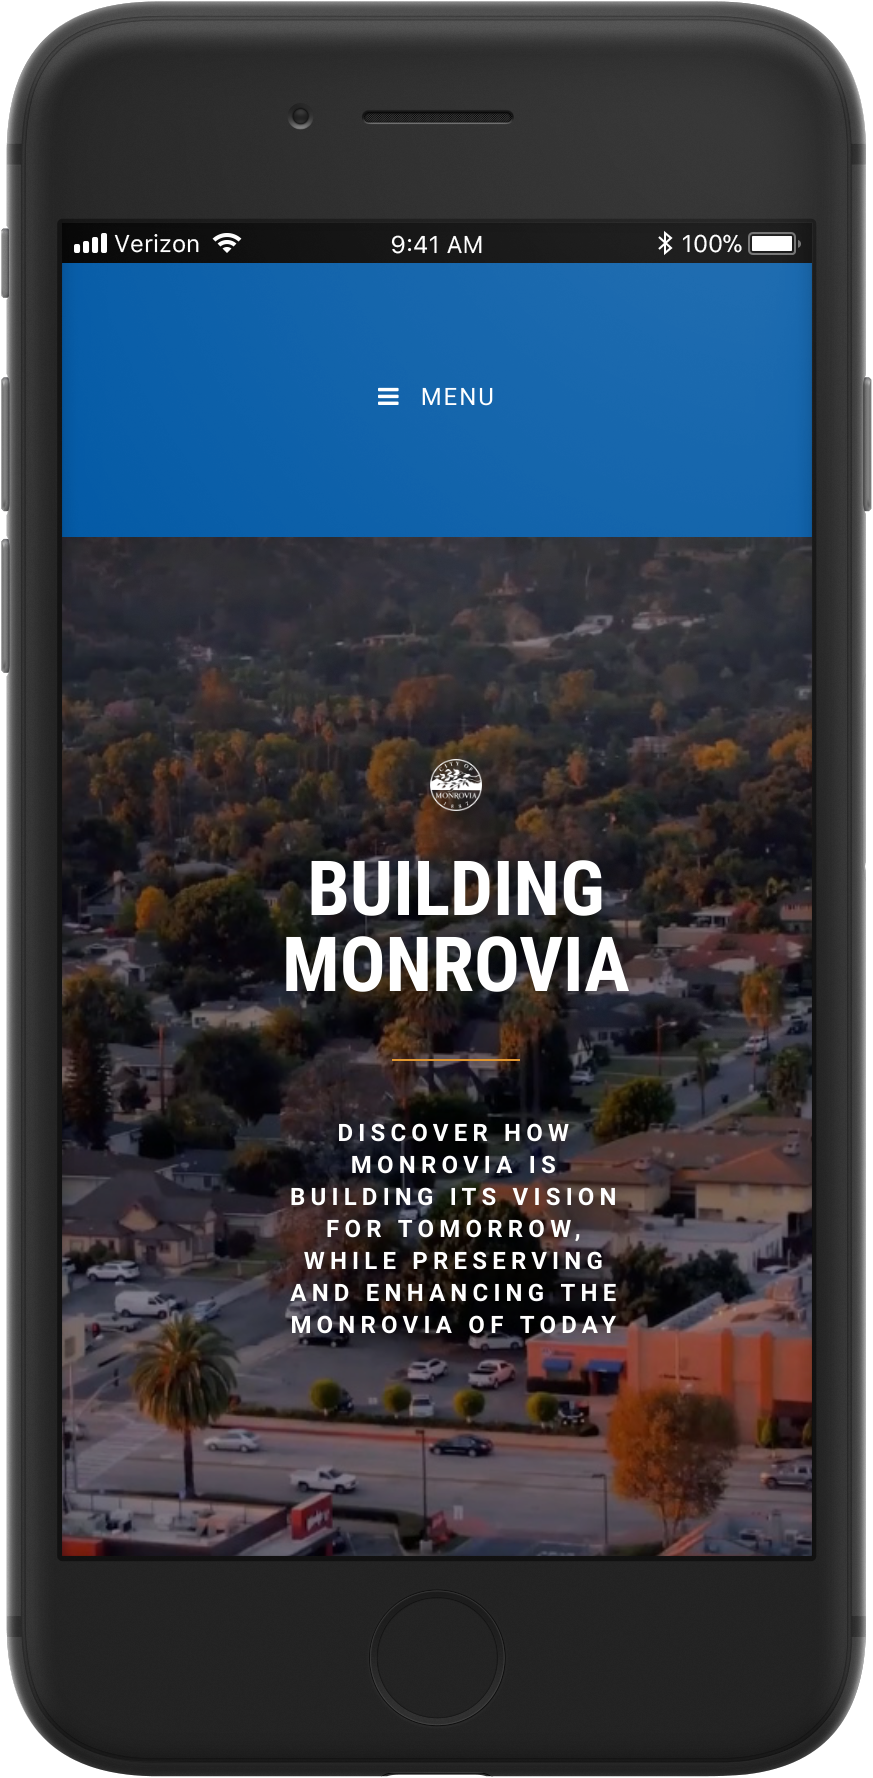 Website Design - collaboration with the City of Monrovia's City Manager's Office to design a website that addresses locals on developments and information surrounding new construction and how it affects the community.